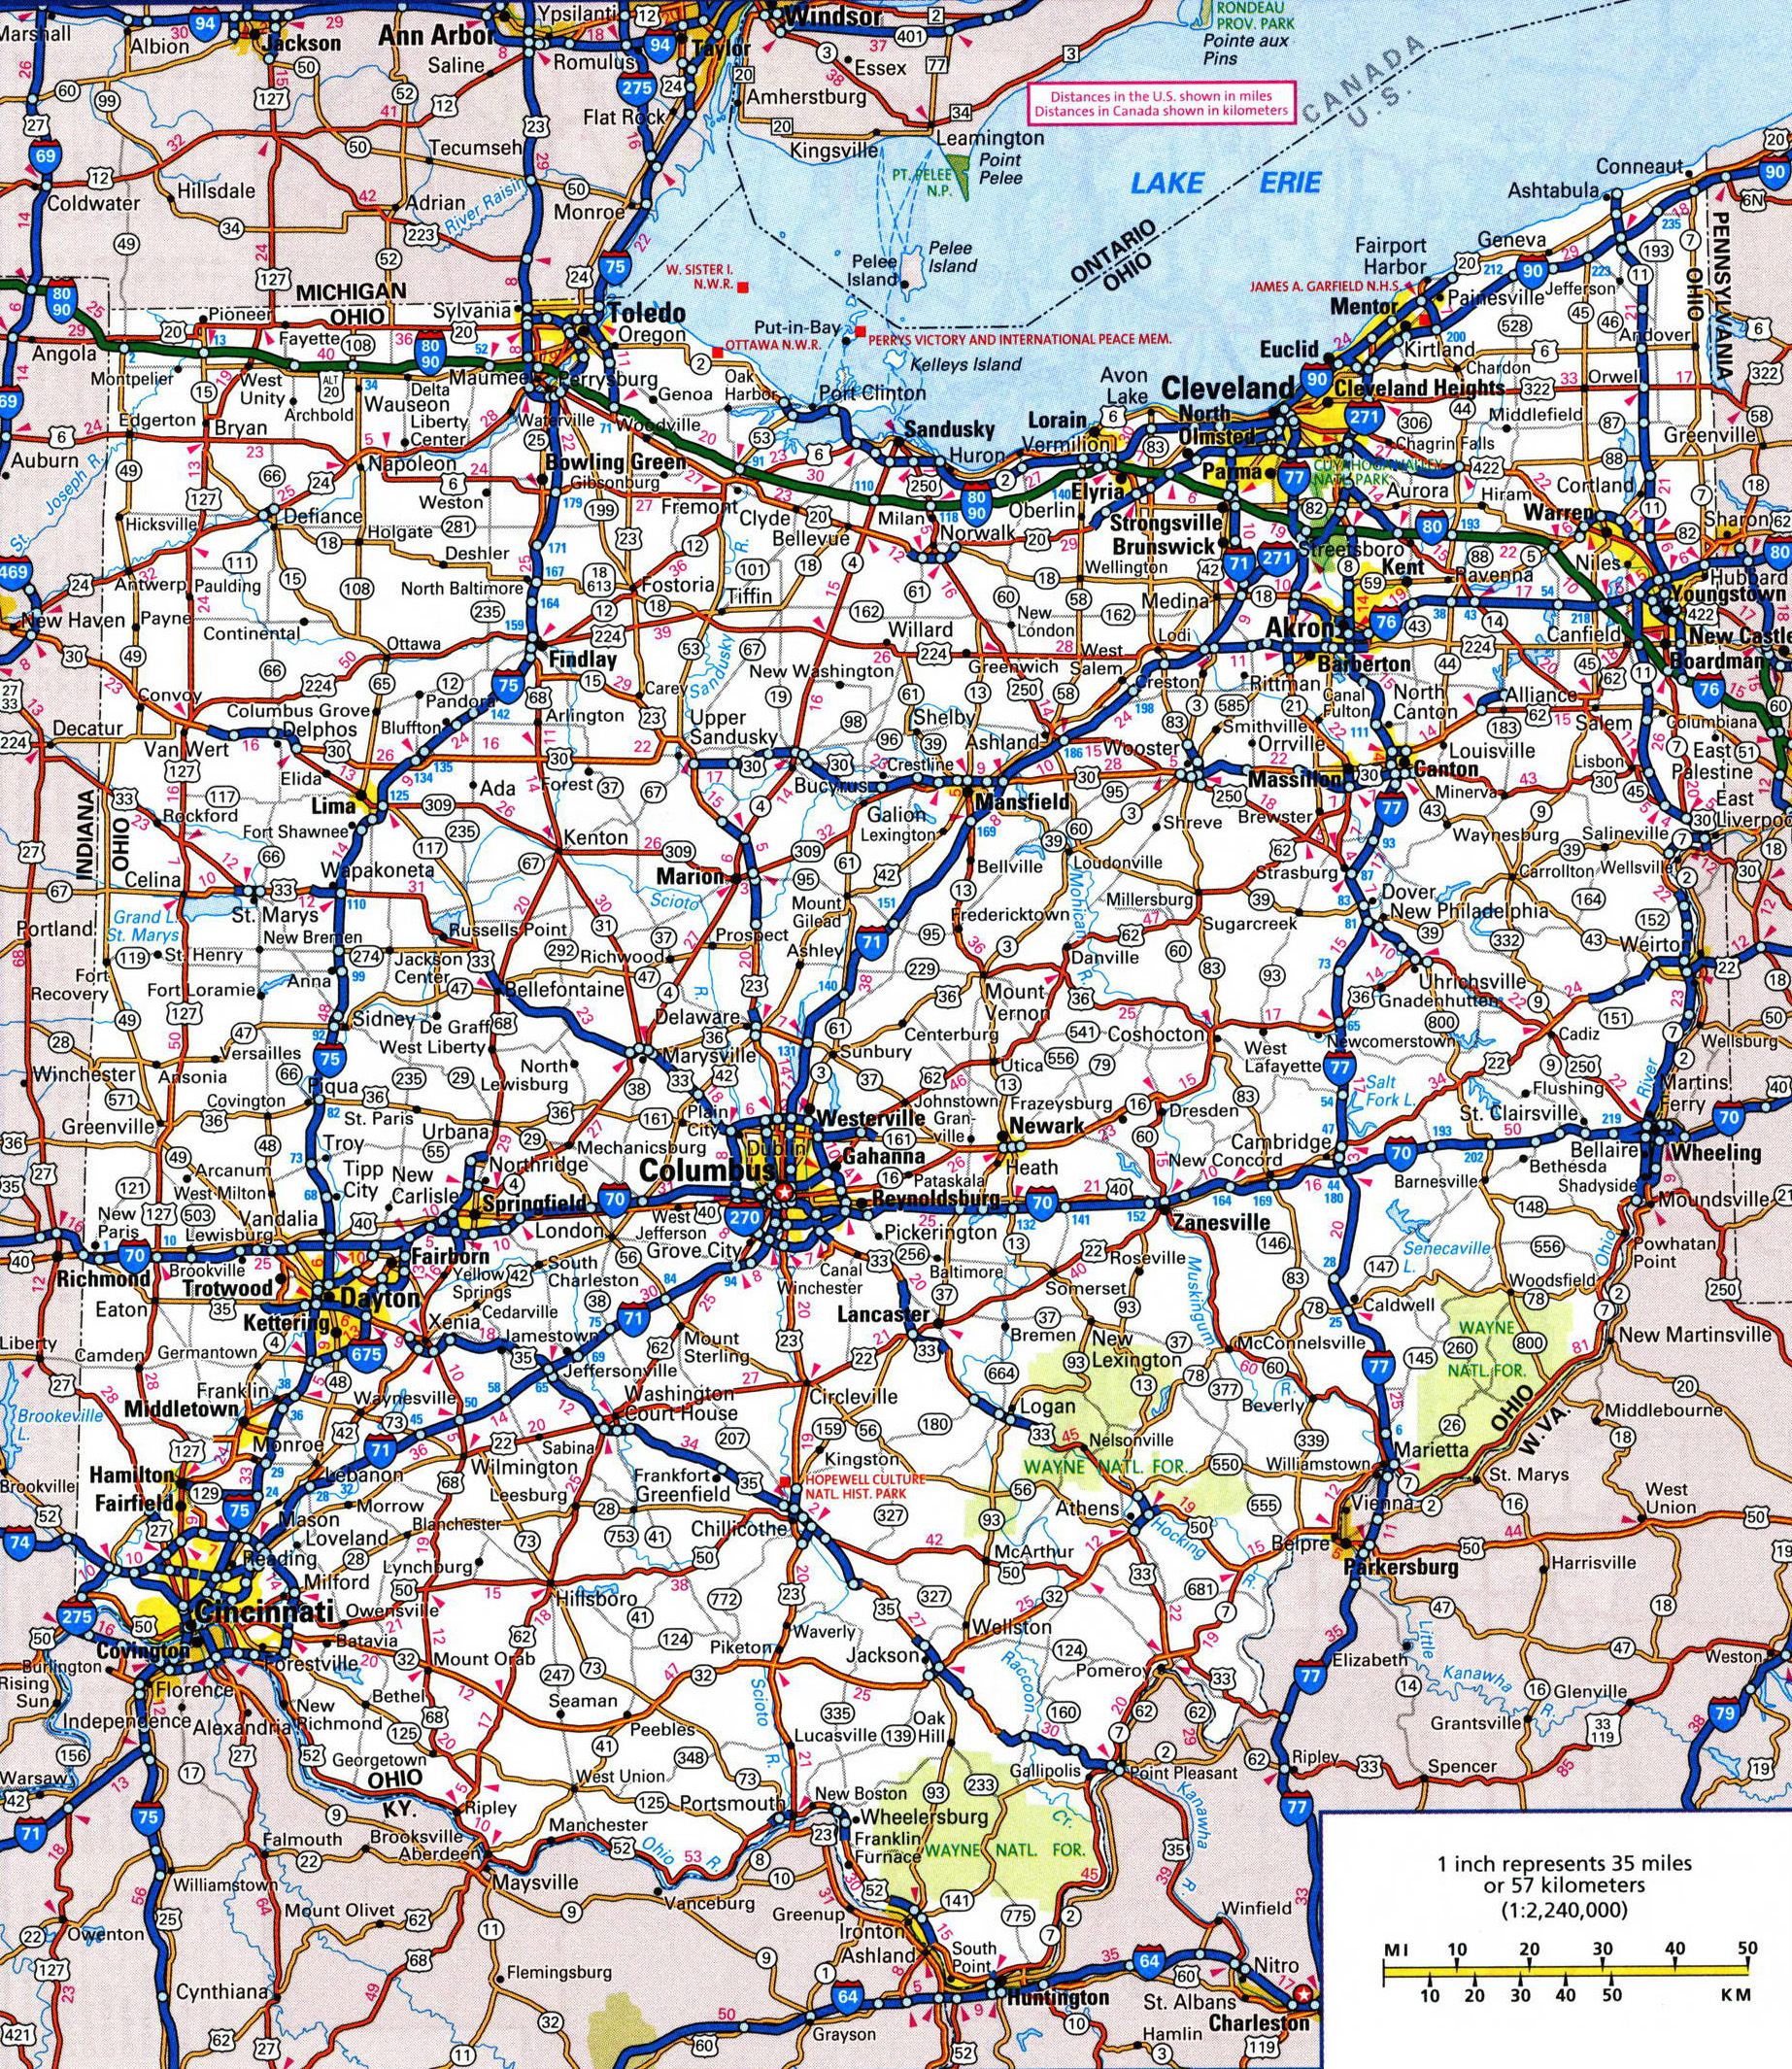 Large detailed roads and highways map of Ohio state with all ... on msp of us, detailed map eastern us, synonyms of us, airport of us, country of us, regions of us, outline of us, united states of us, weather of us, center of us, detailed us map printable, demographics of us, google maps of us, west coast of us, globe of us, east coast of us, language of us, geography of us, detailed maps of the united states,